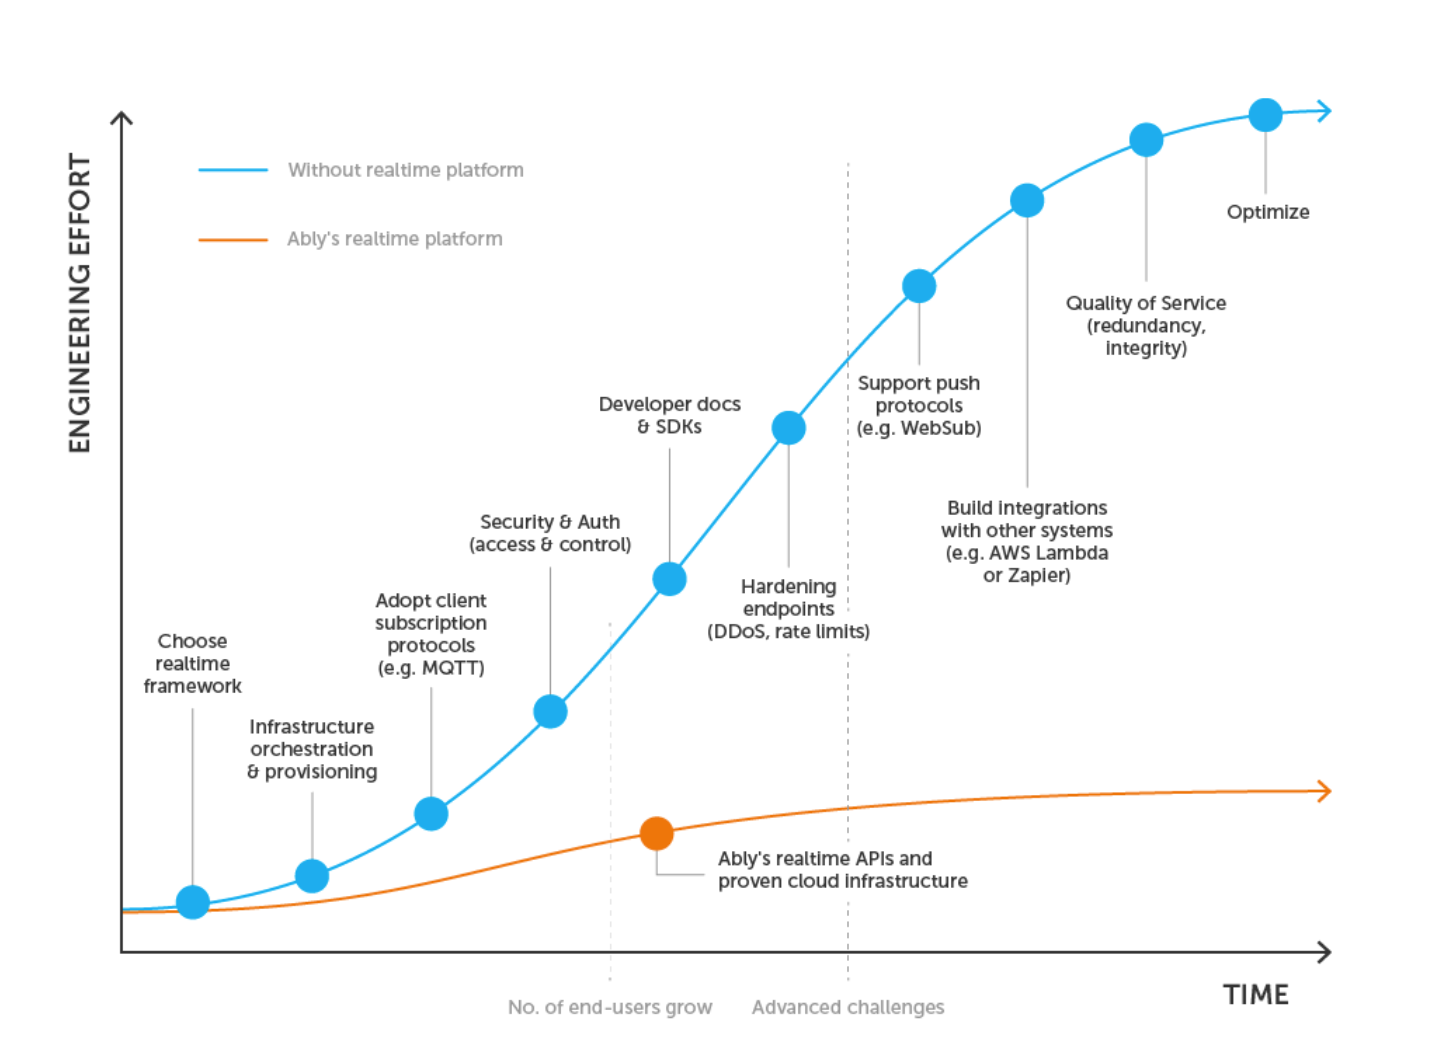 Blue line of realtime engineering effort grows fast with number of users; orange (Ably) line grows slow